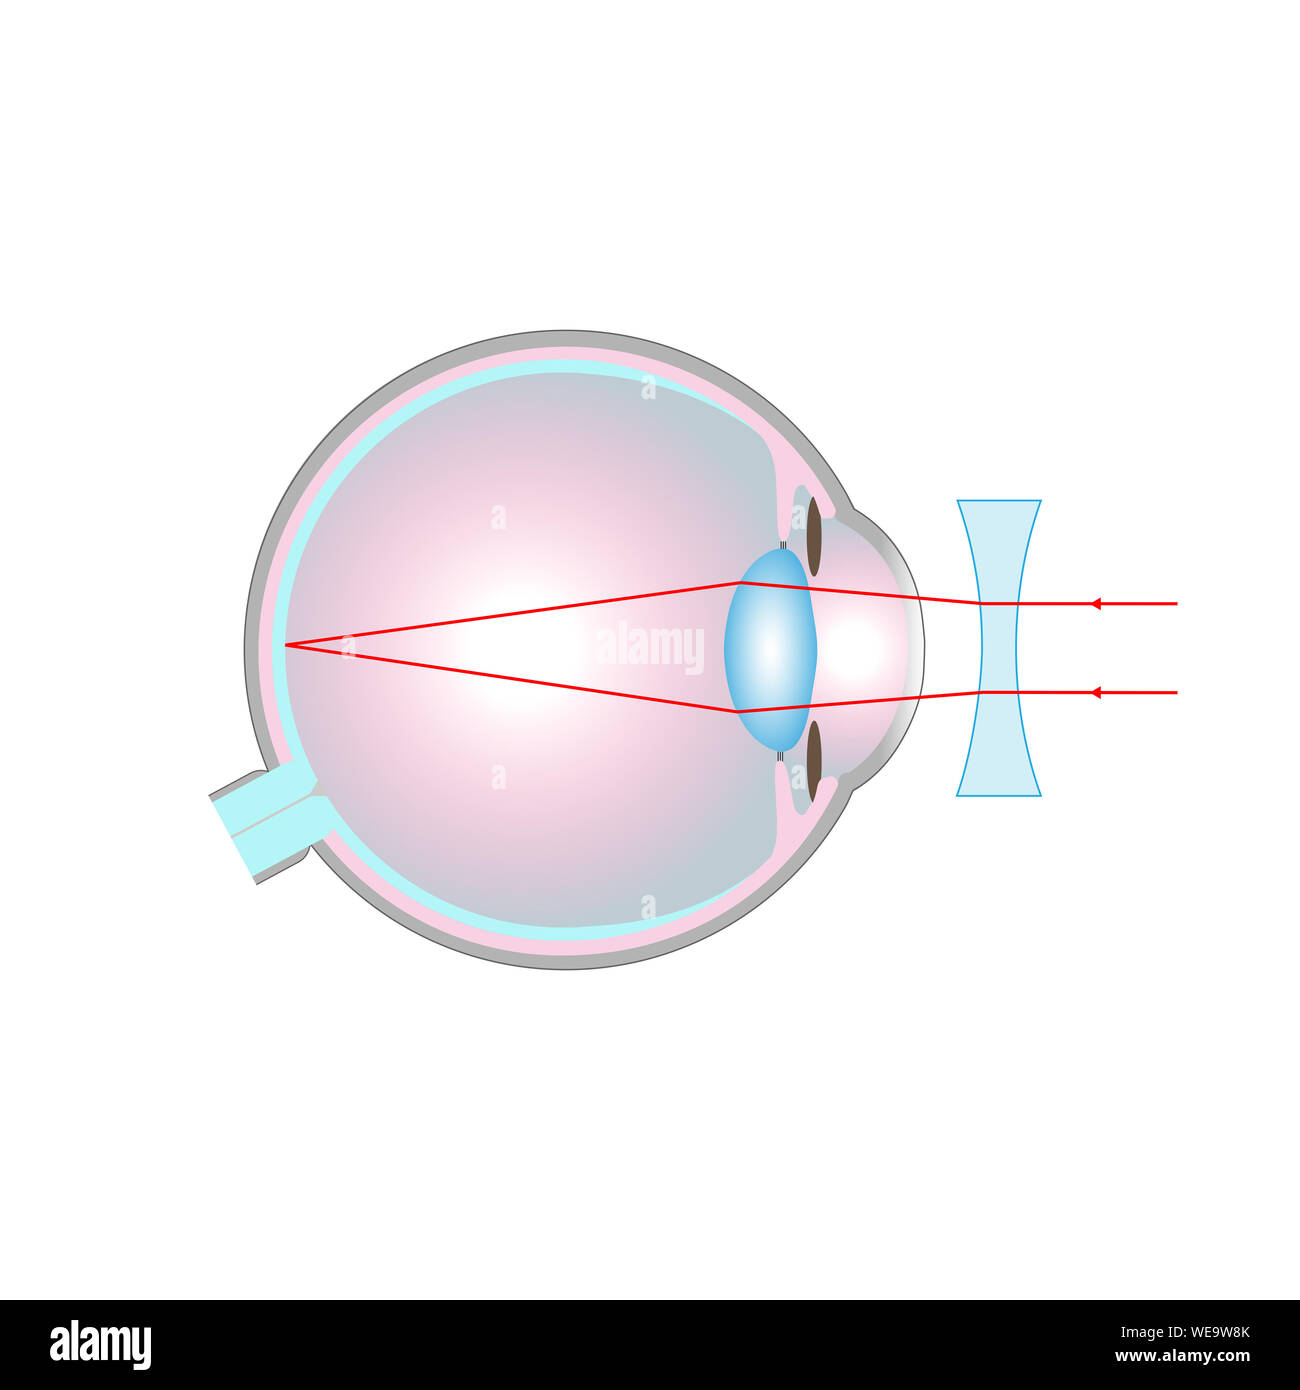 Vision disorder, illustration. Short-sightedness (myopia) corrected with a concave lens. Stock Photo